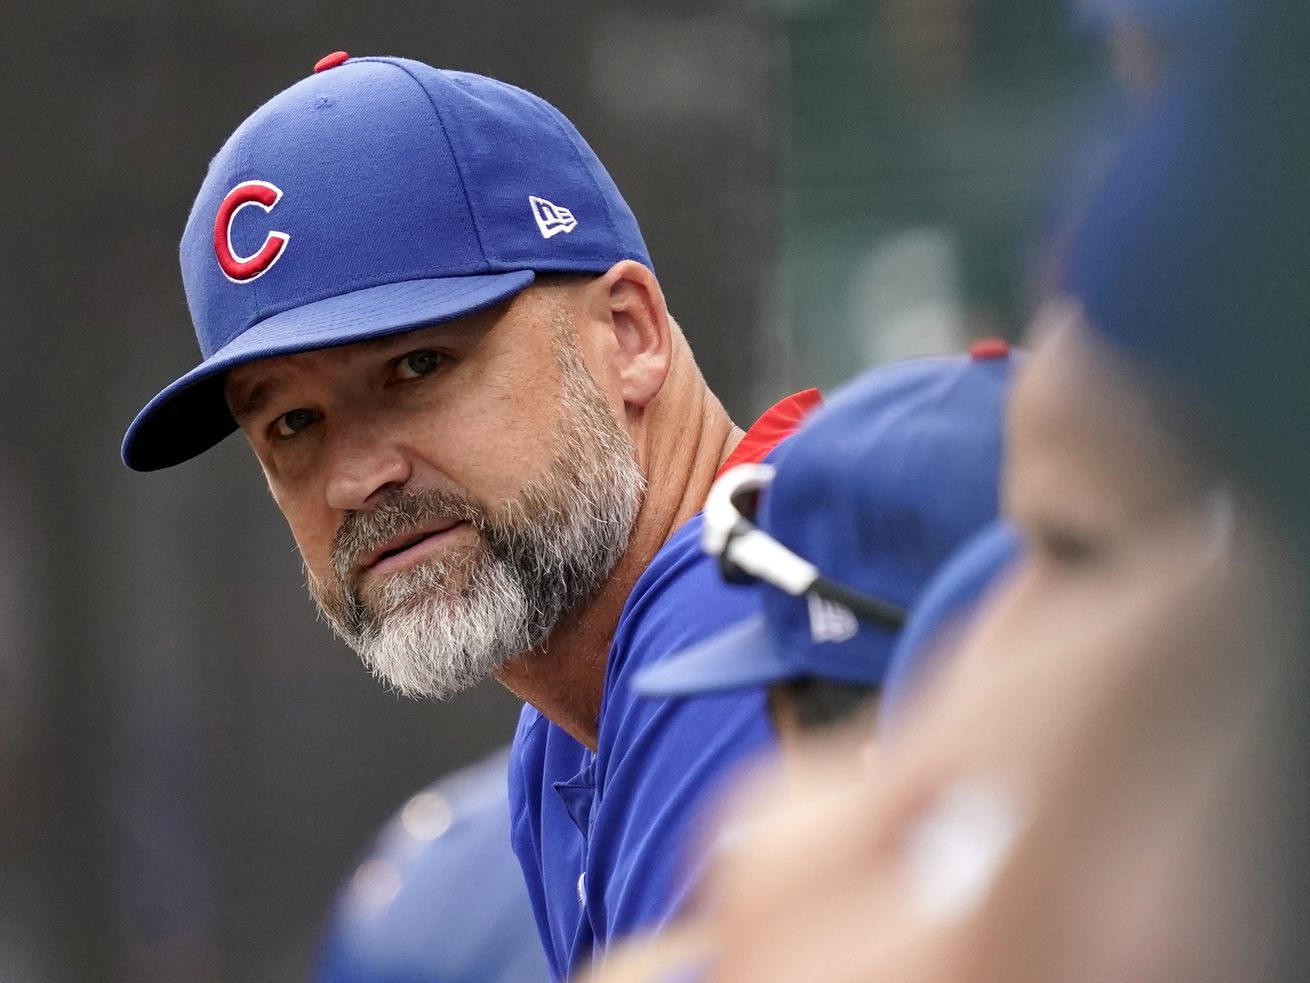 Manager David Ross and the rest of the Cubs leadership believe they know how to make the team competitive again.